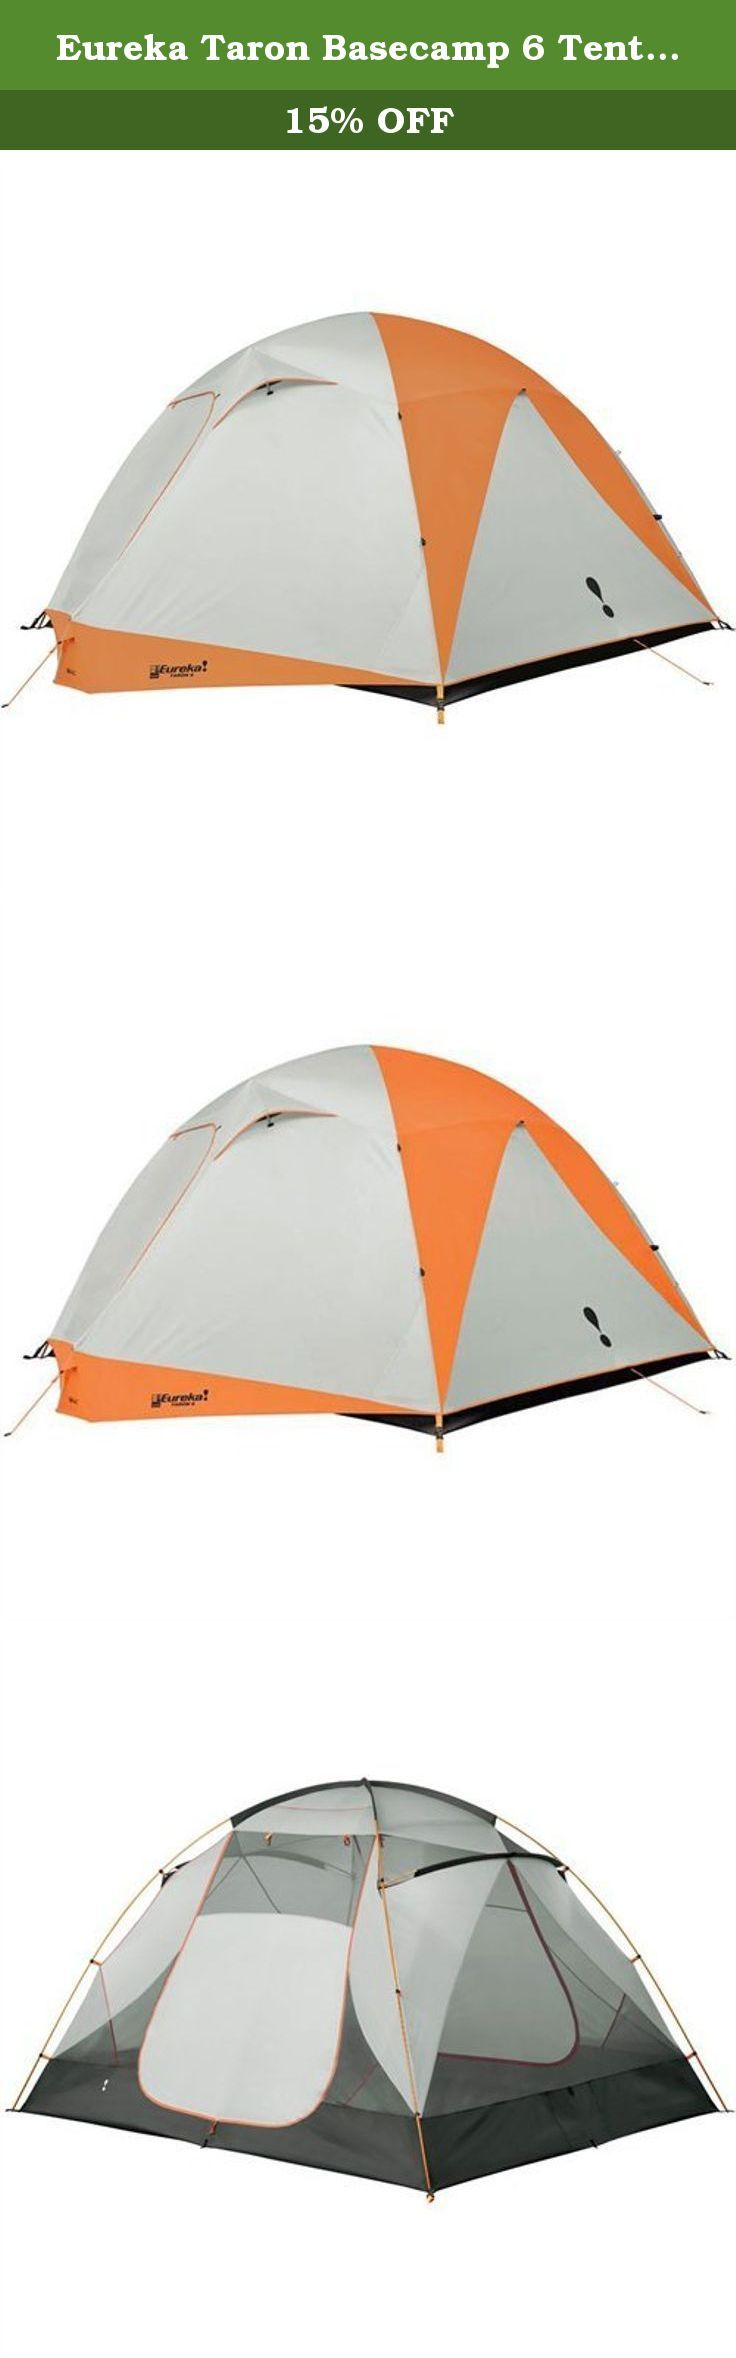 Eureka Taron Basec& 6 Tent - 6 Person. The Taron Basec& 6 Tent is a  sc 1 st  Pinterest : eureka dining tent - memphite.com